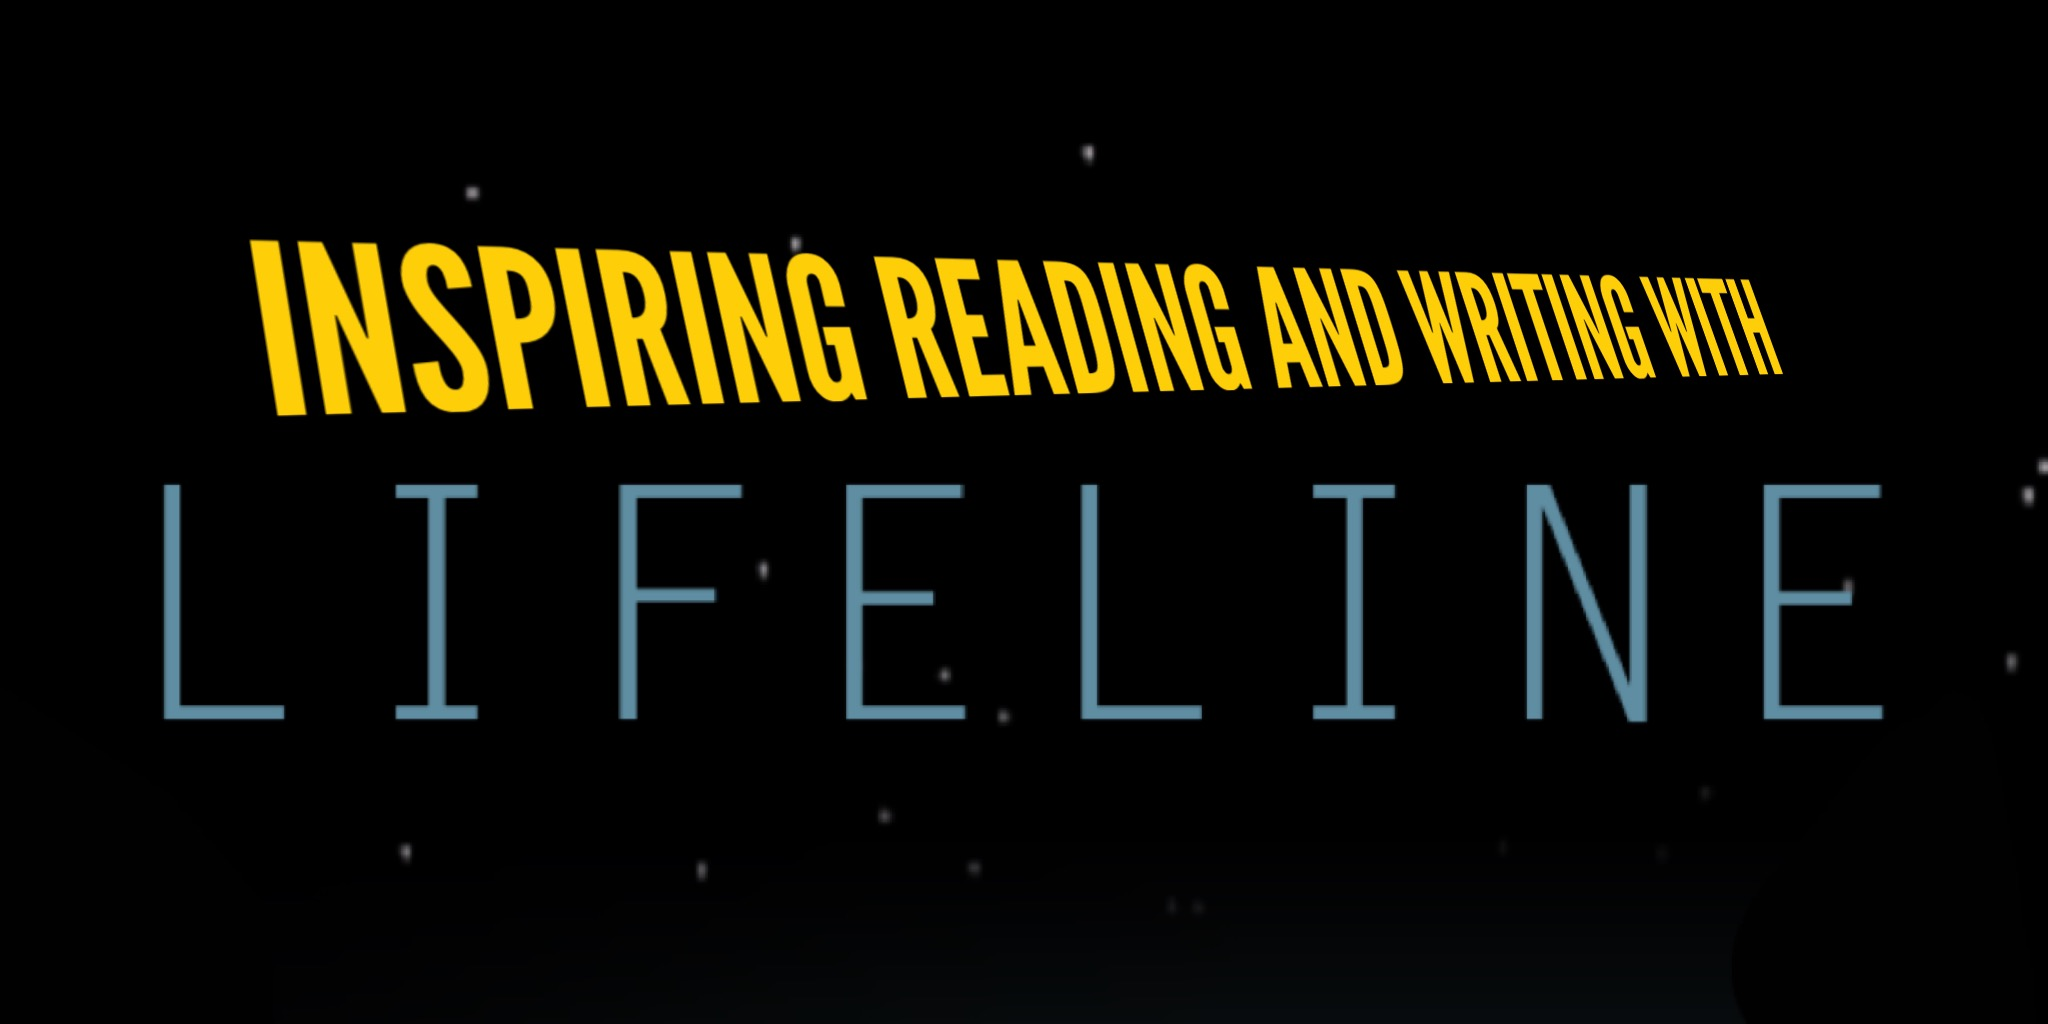 Inspiring reading and writing with the Lifeline App